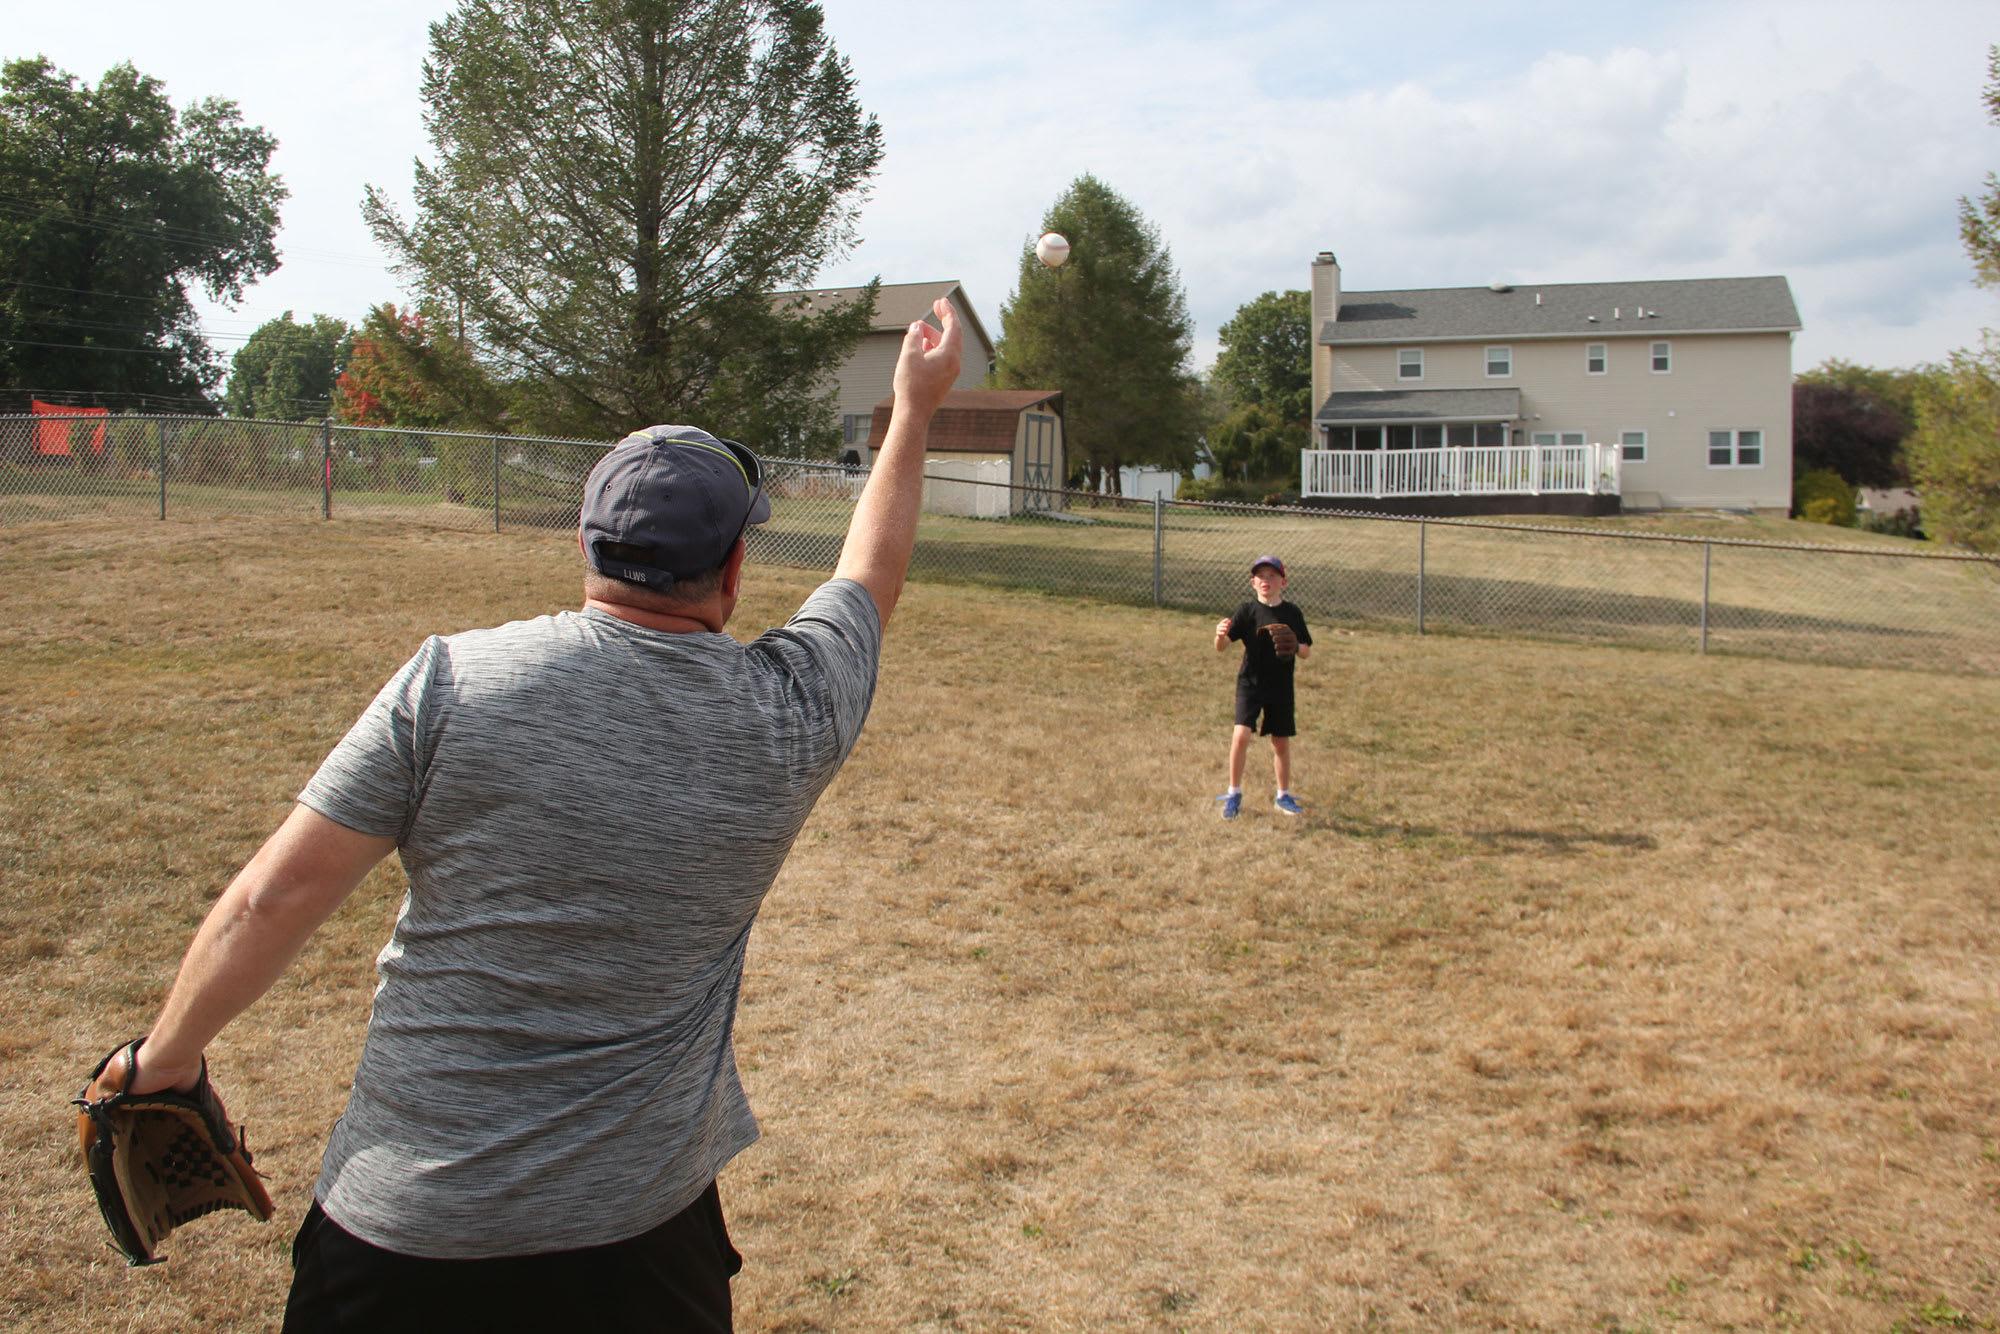 adult tossing ball